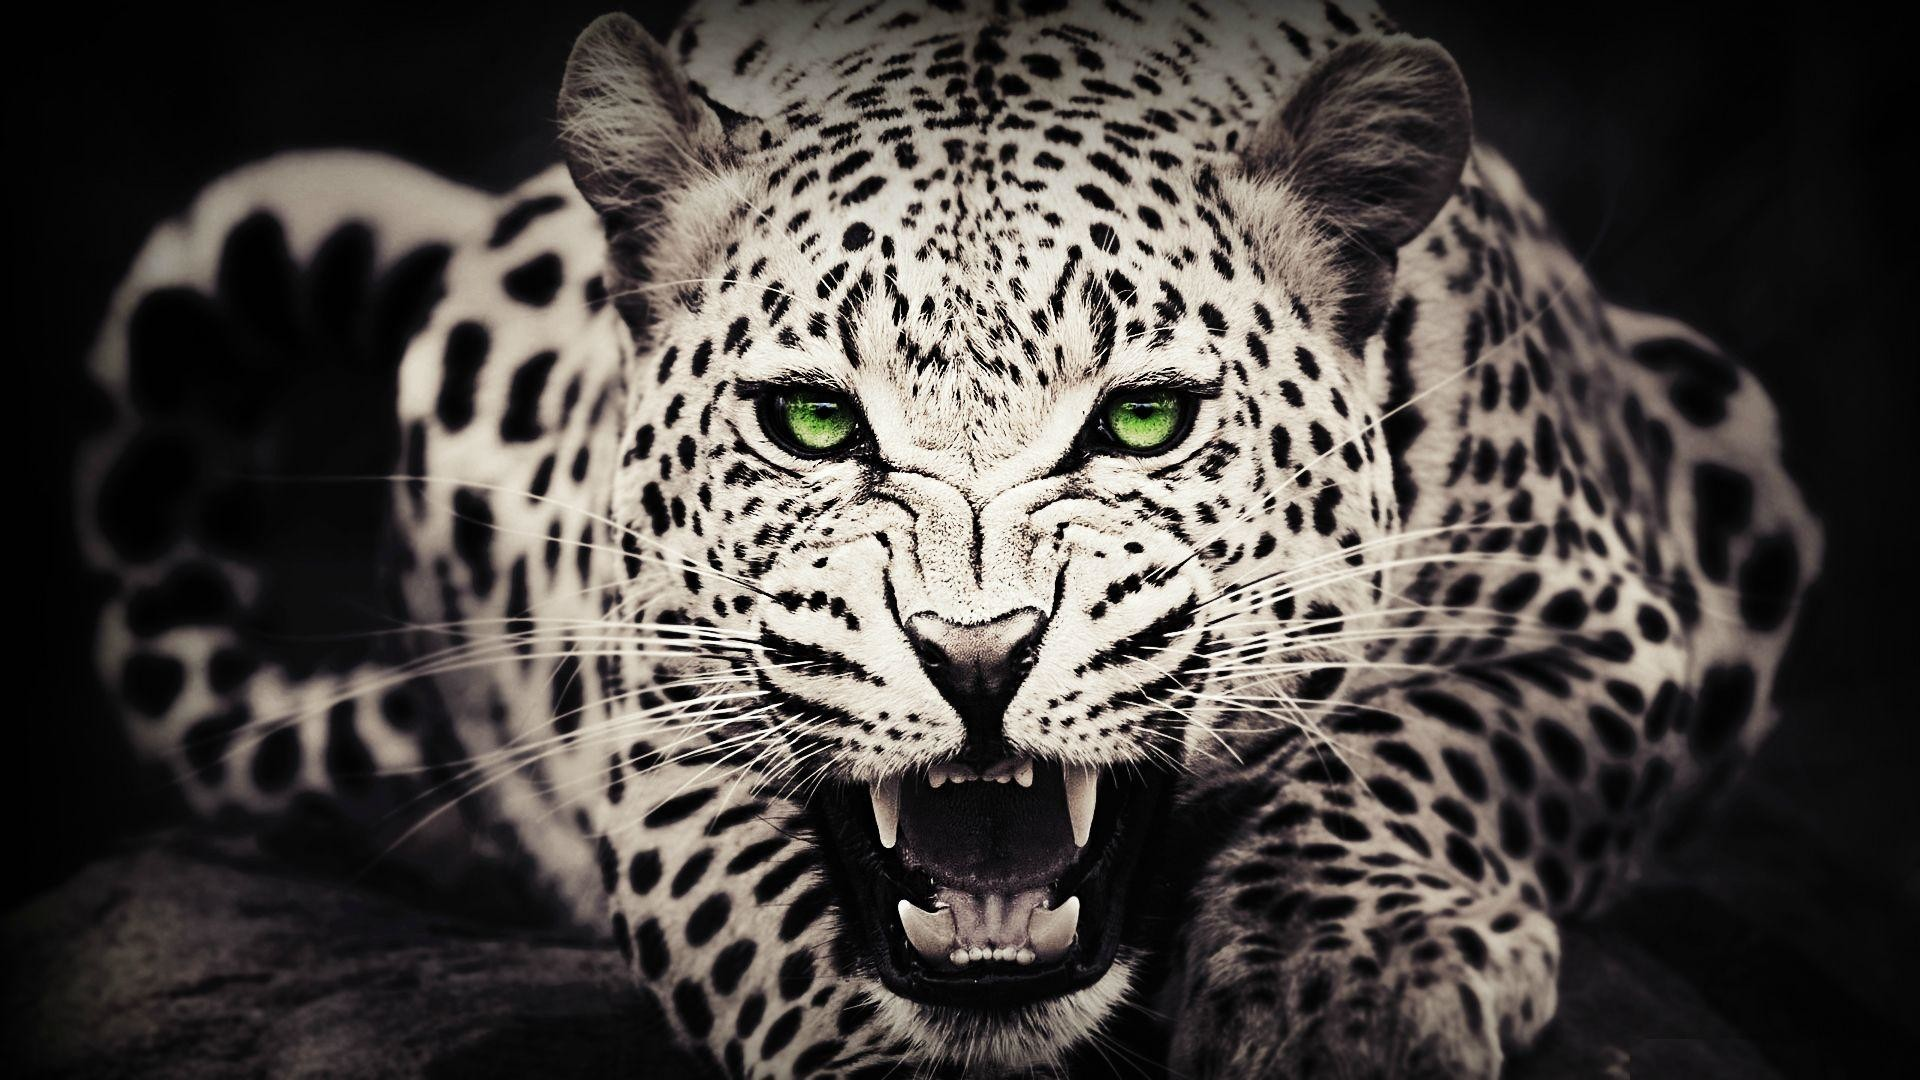 Cool animal wallpaper 58 images 1920x1080 animal wallpaper cool animal iphone wallpaper wallpaper hd voltagebd Images